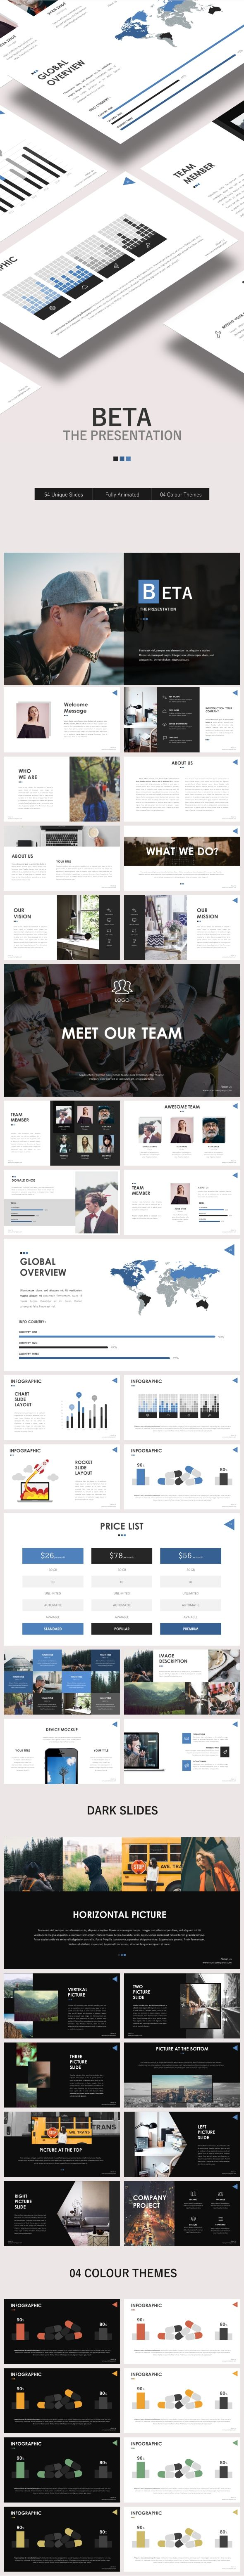 Beta PowerPoint Template — Powerpoint PPTX #triangle #creative • Download ➝ https://graphicriver.net/item/beta-powerpoint-template/19379288?ref=pxcr